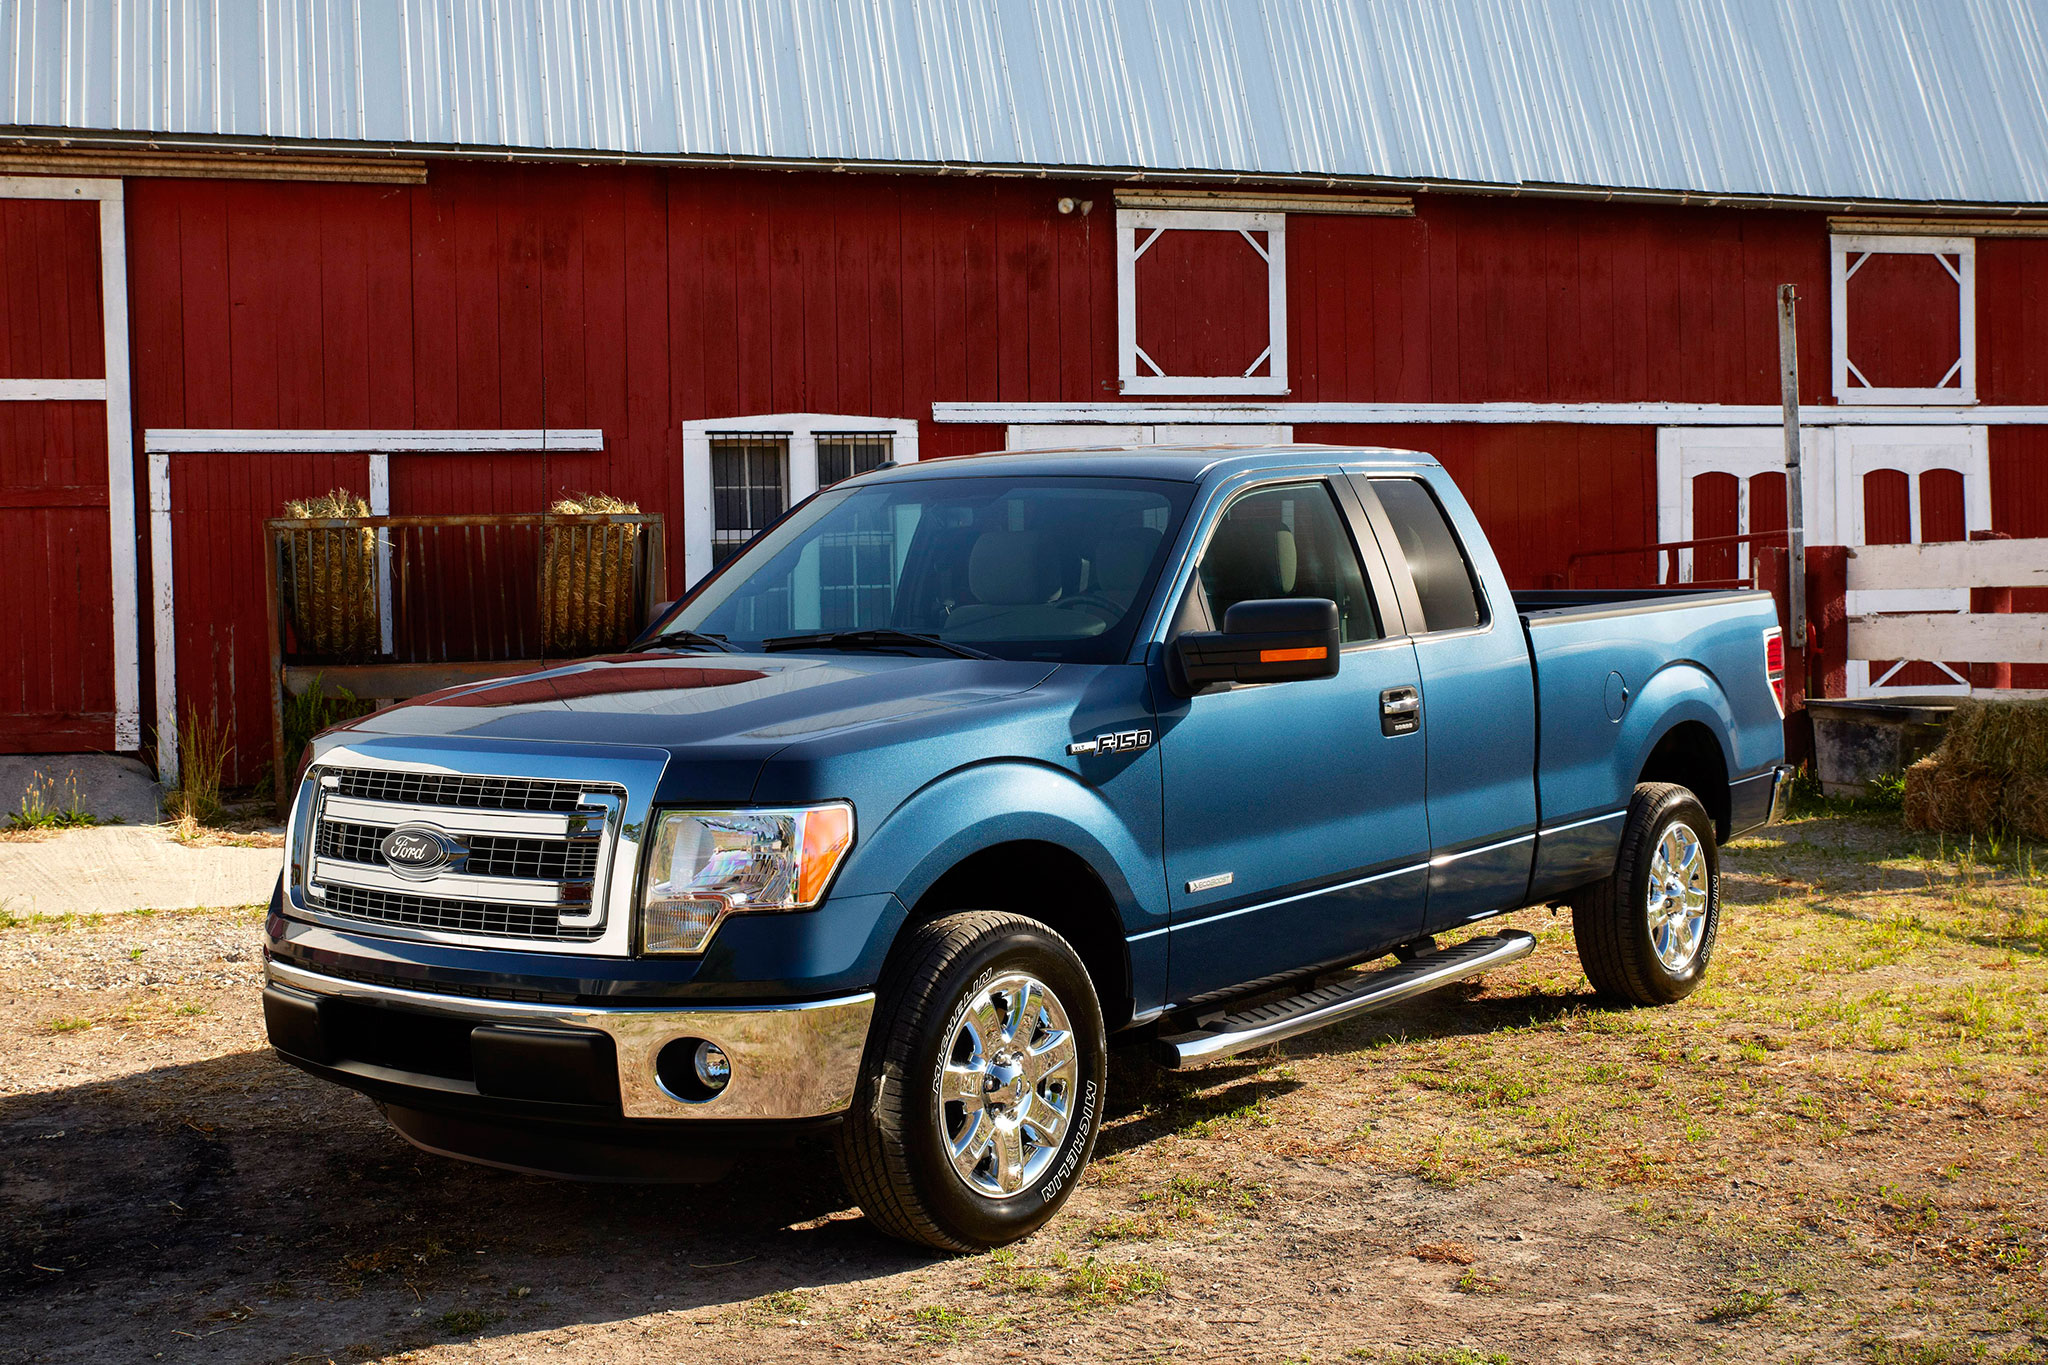 Ford F 150 Ecoboost 4x4 Auto Express